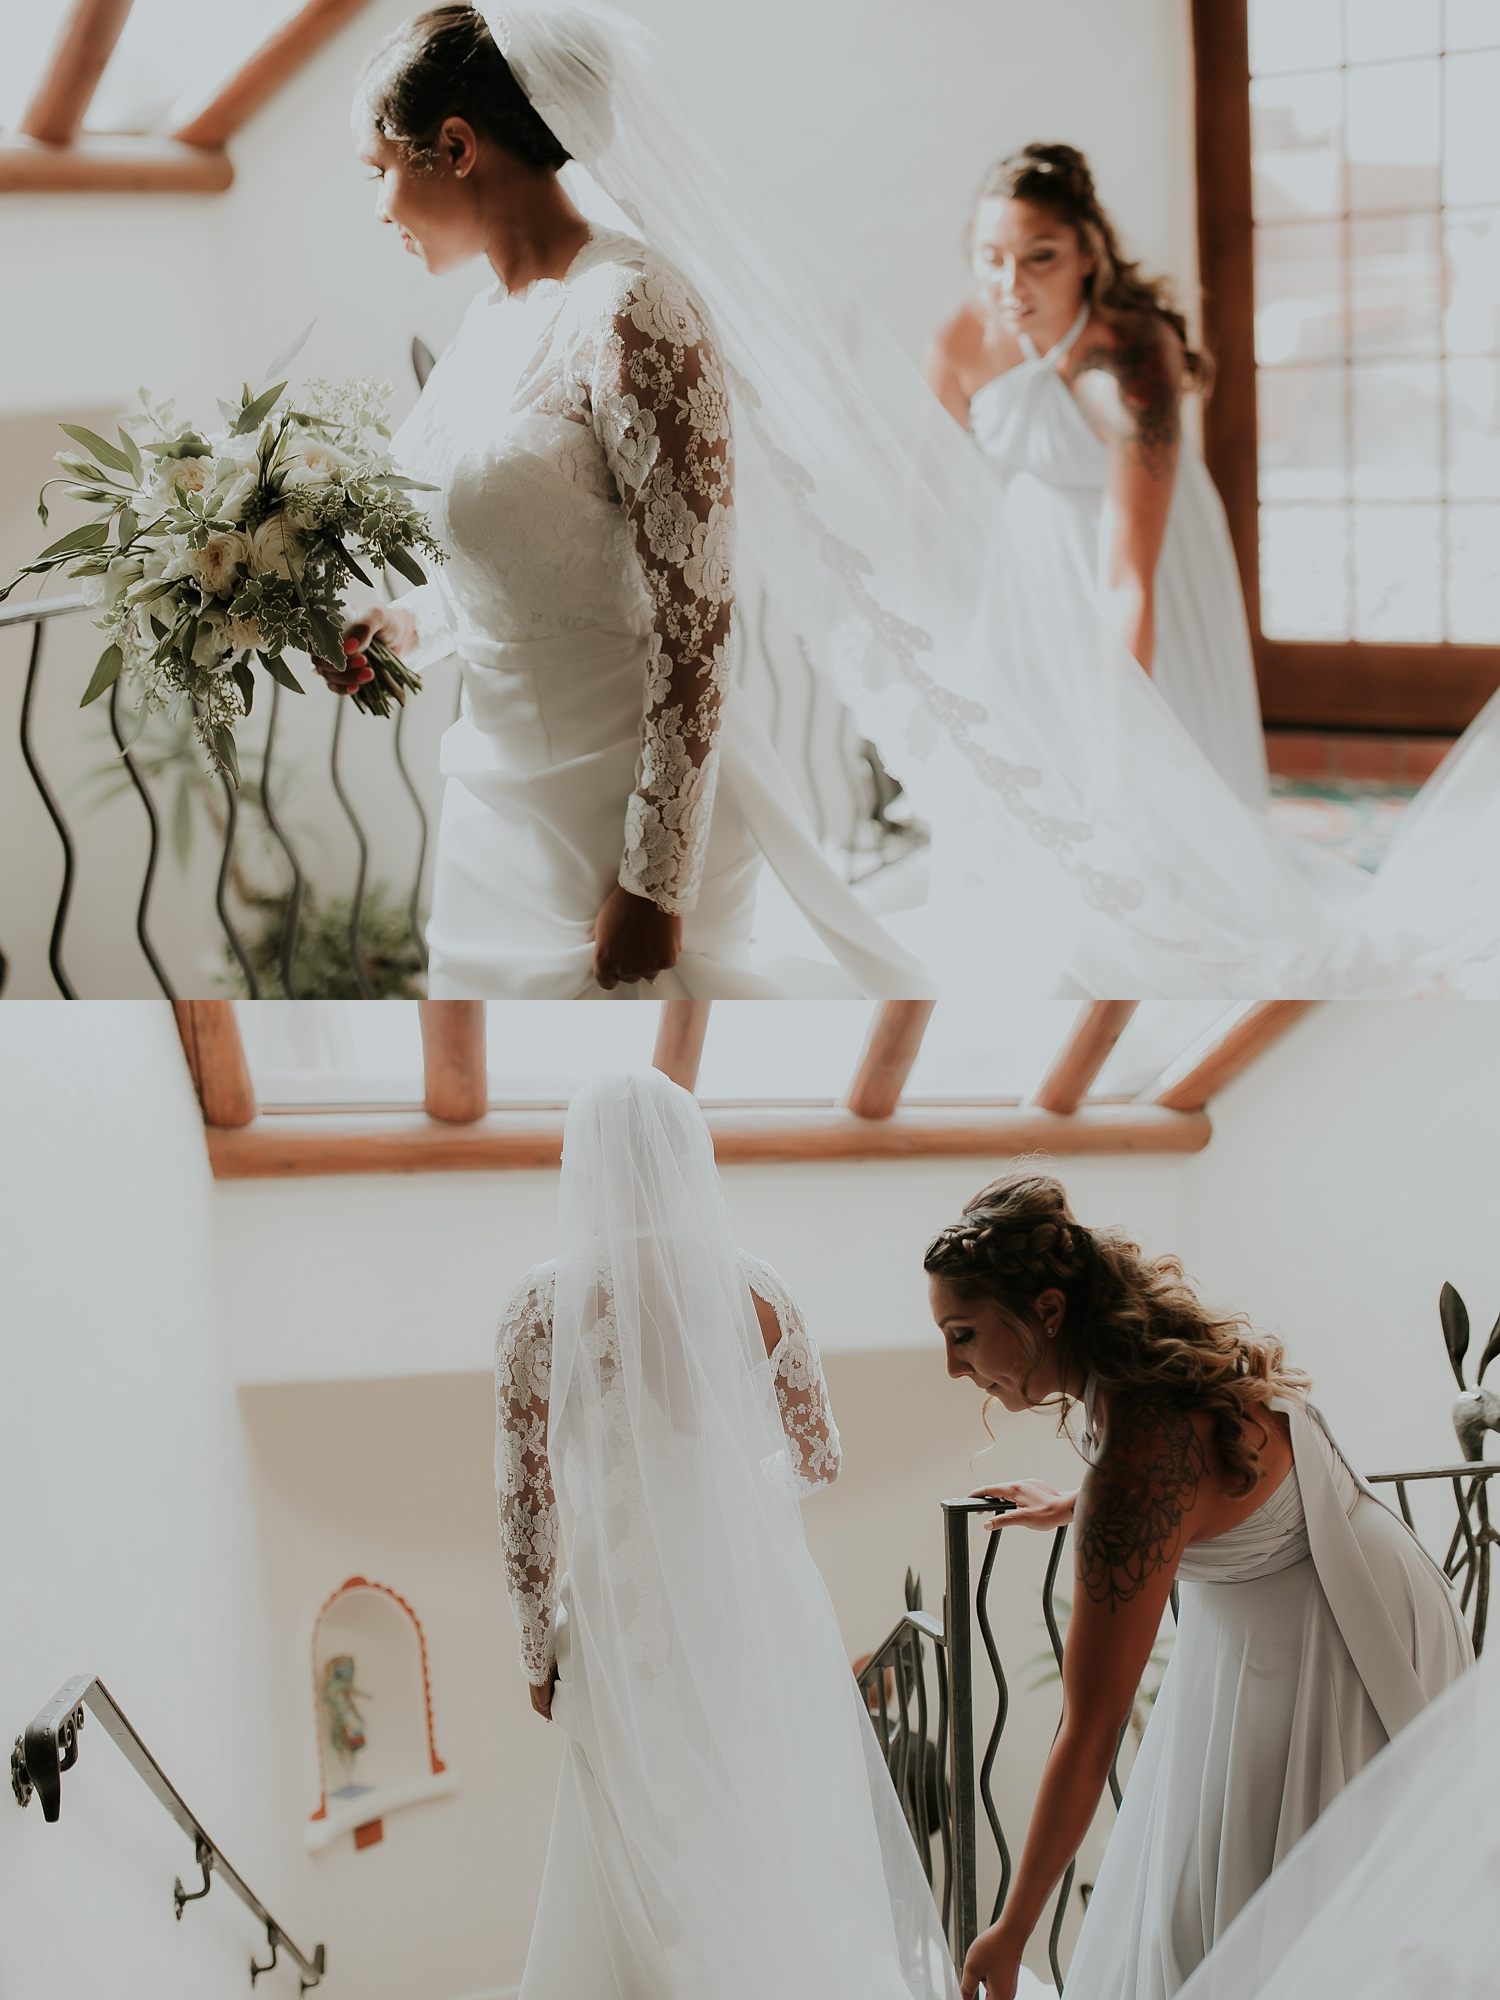 Alicia+lucia+photography+-+albuquerque+wedding+photographer+-+santa+fe+wedding+photography+-+new+mexico+wedding+photographer+-+new+mexico+engagement+-+la+fonda+new+mexico+wedding+-+la+fonda+fall+wedding_0024.jpg